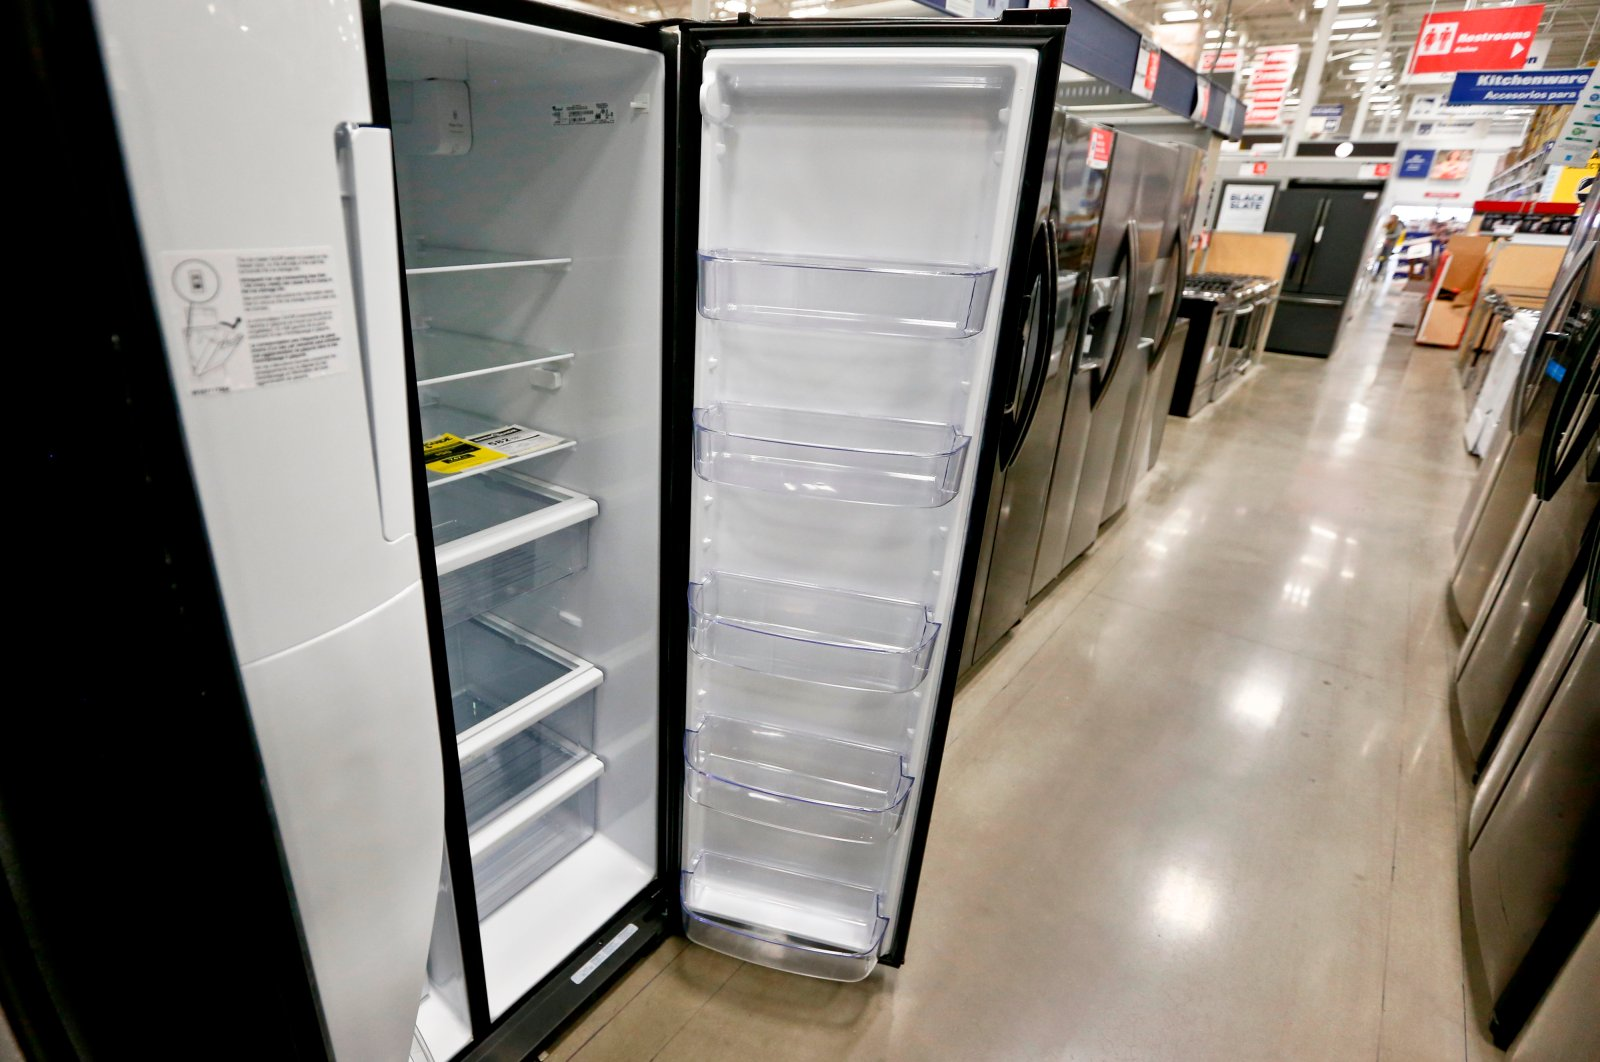 A selection of refrigerators is available for sale at a big box store in Cranberry Township, U.S., April 11, 2018. (AP Photo)